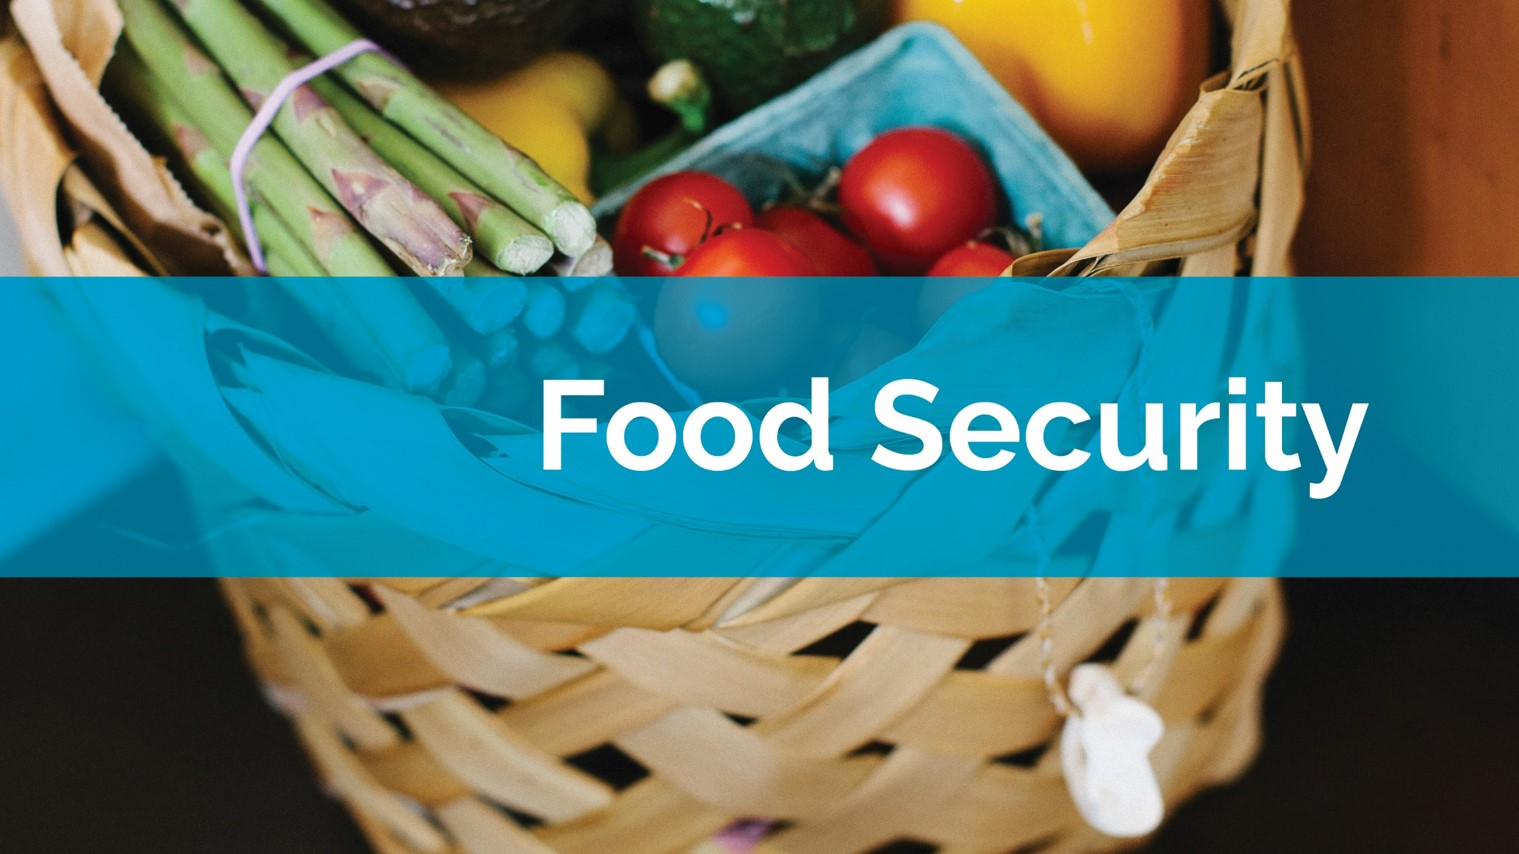 Food Security